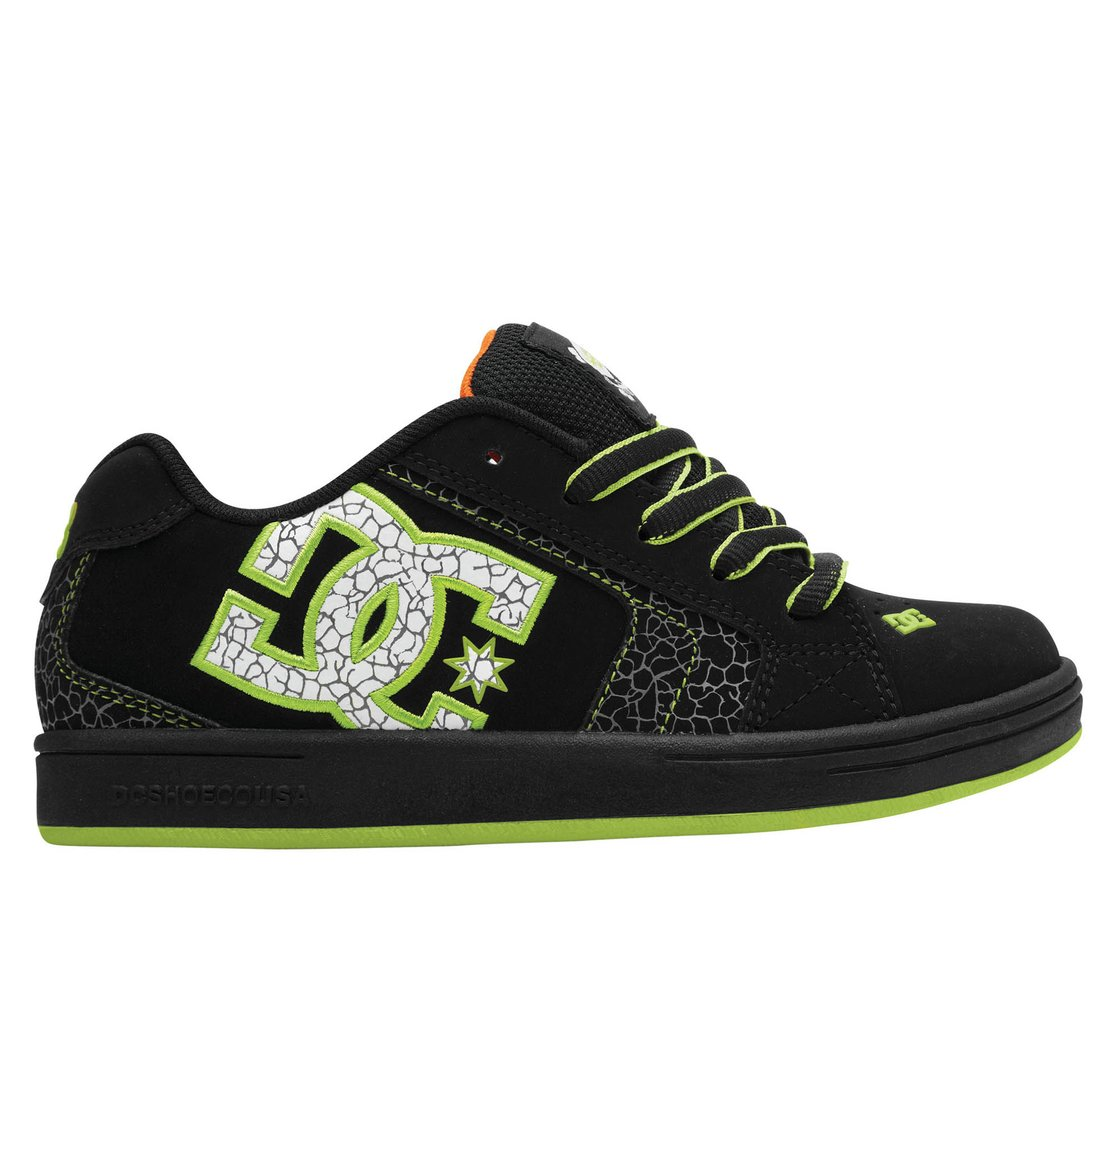 Ken Block Dc Shoes Video